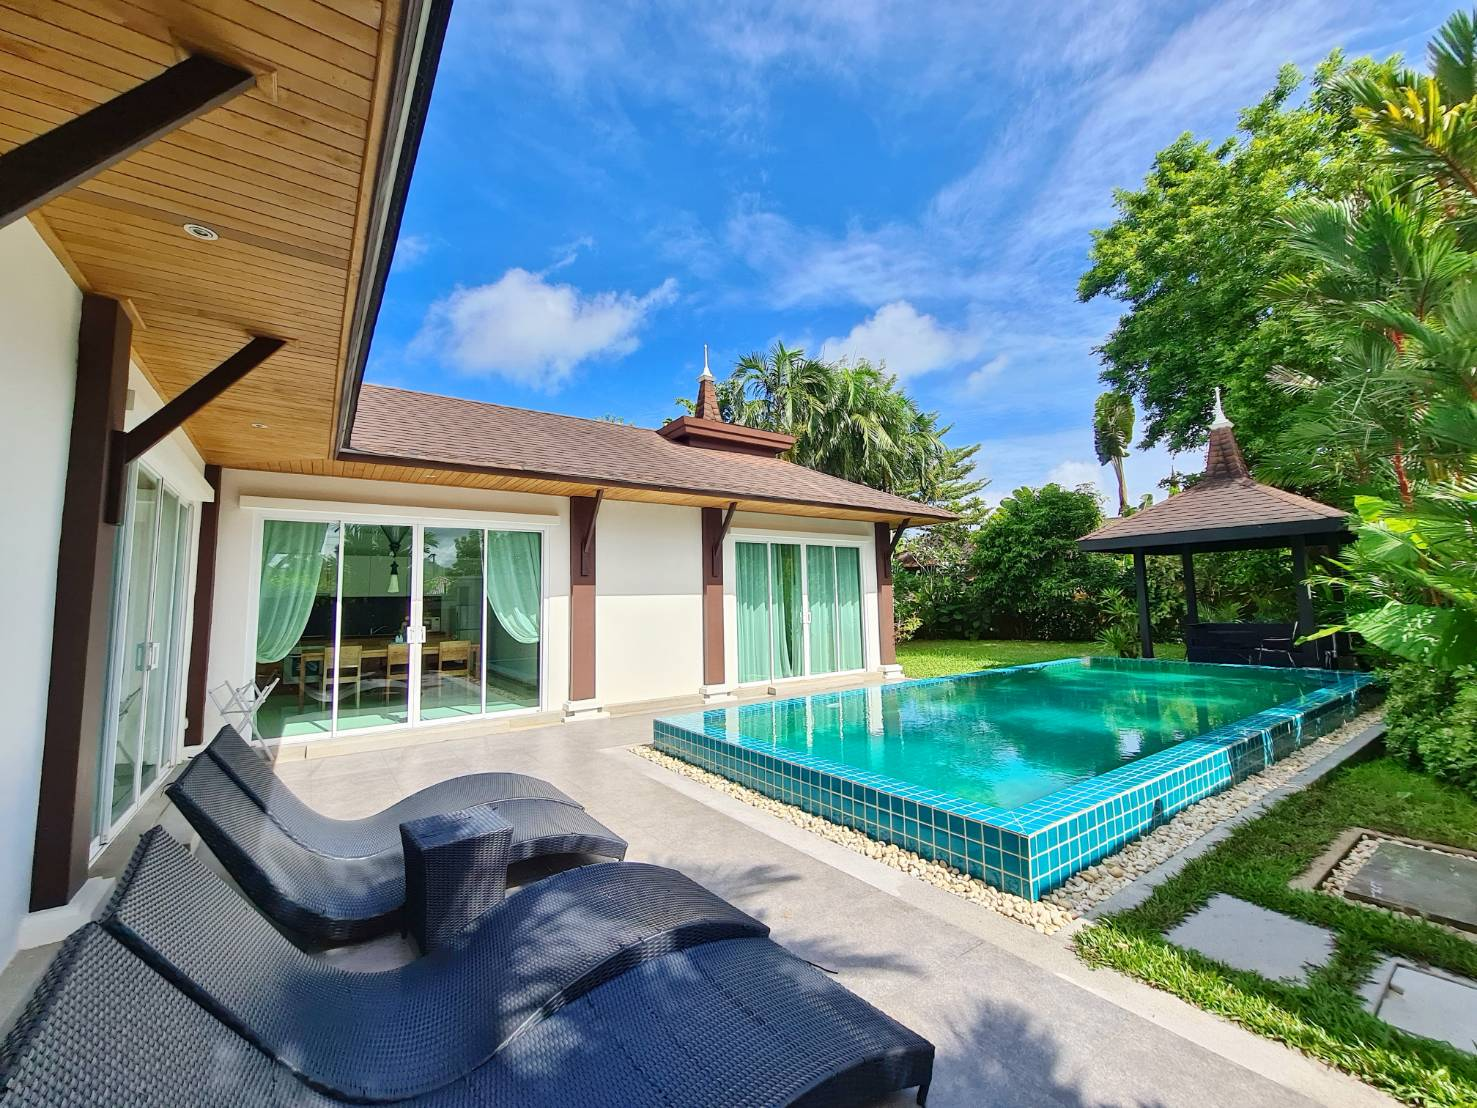 Discounted 2 bedroom villa for sale ฿8.5m from ฿11.5m